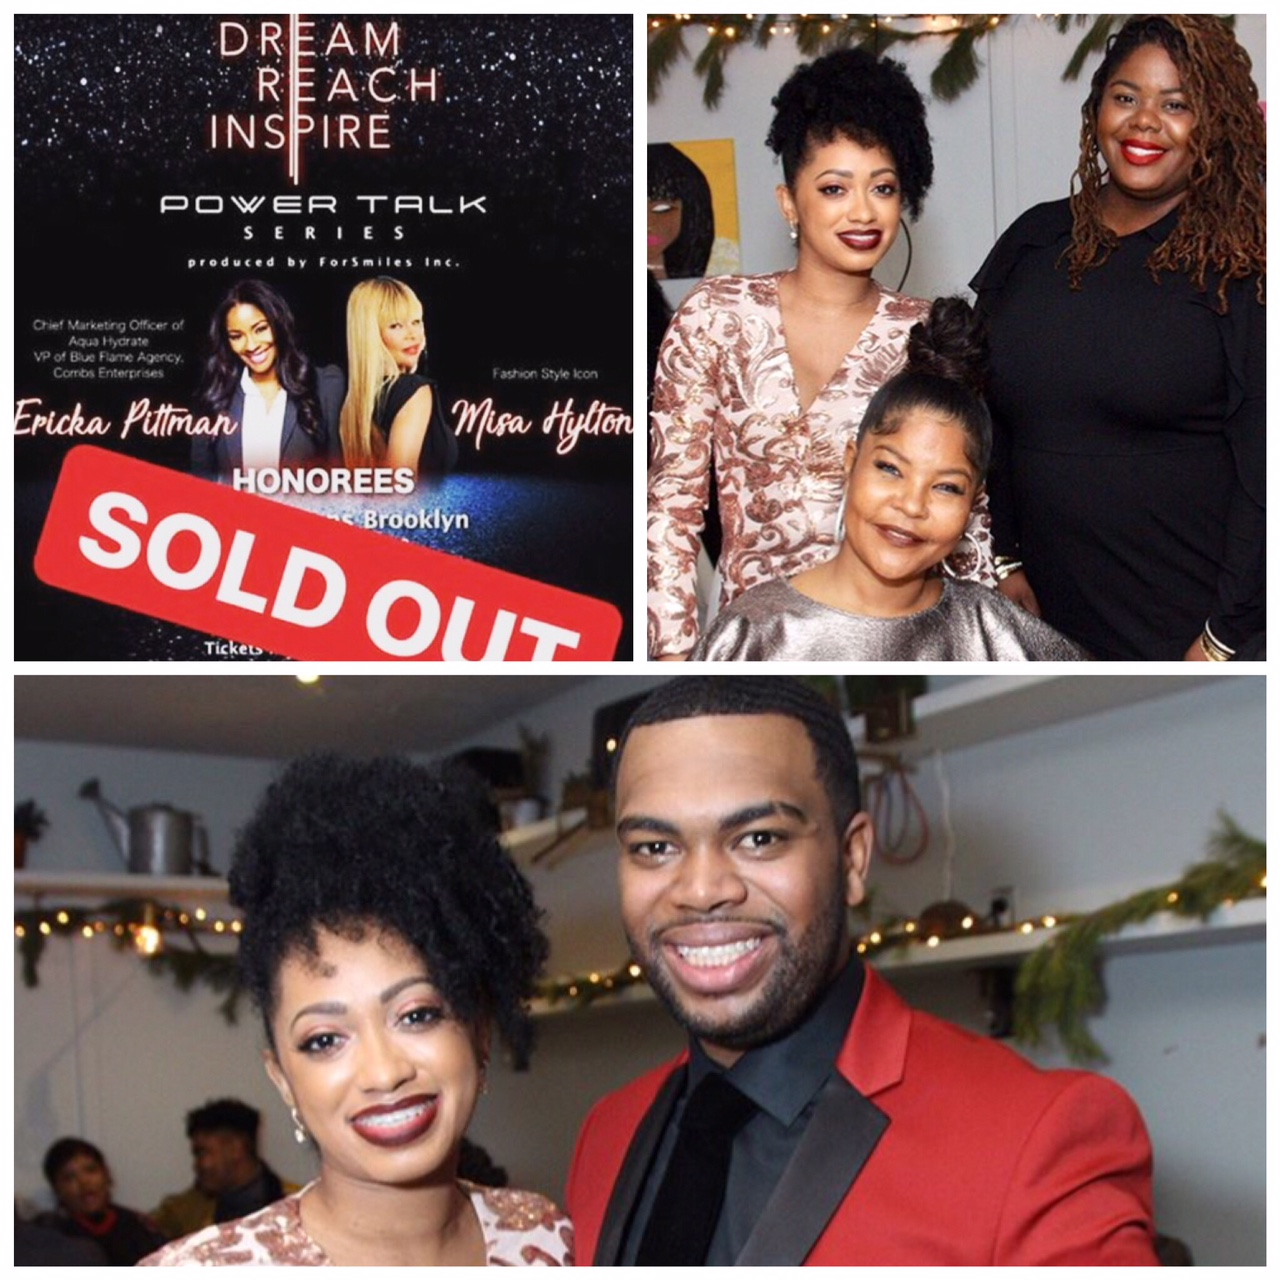 Dream.Reach.Inspire (Non-Profit Organization) inspiring children to be leaders by honoring celebrities who made a difference within the community. Assisted in sponsoring event and bringing in local entrepreneurs to get the exposure for children to see they can do it also.  Honorees: Erika Pittman (Chief Marketing Officer of AQUAhydrate) & Misa Hylton (Mother, Entrepreneur, Lifestyle Architect, Fashion Designer, Image Advisor, Teacher & Founder of the Misa Hylton Fashion Academy, Certified Life Coach)